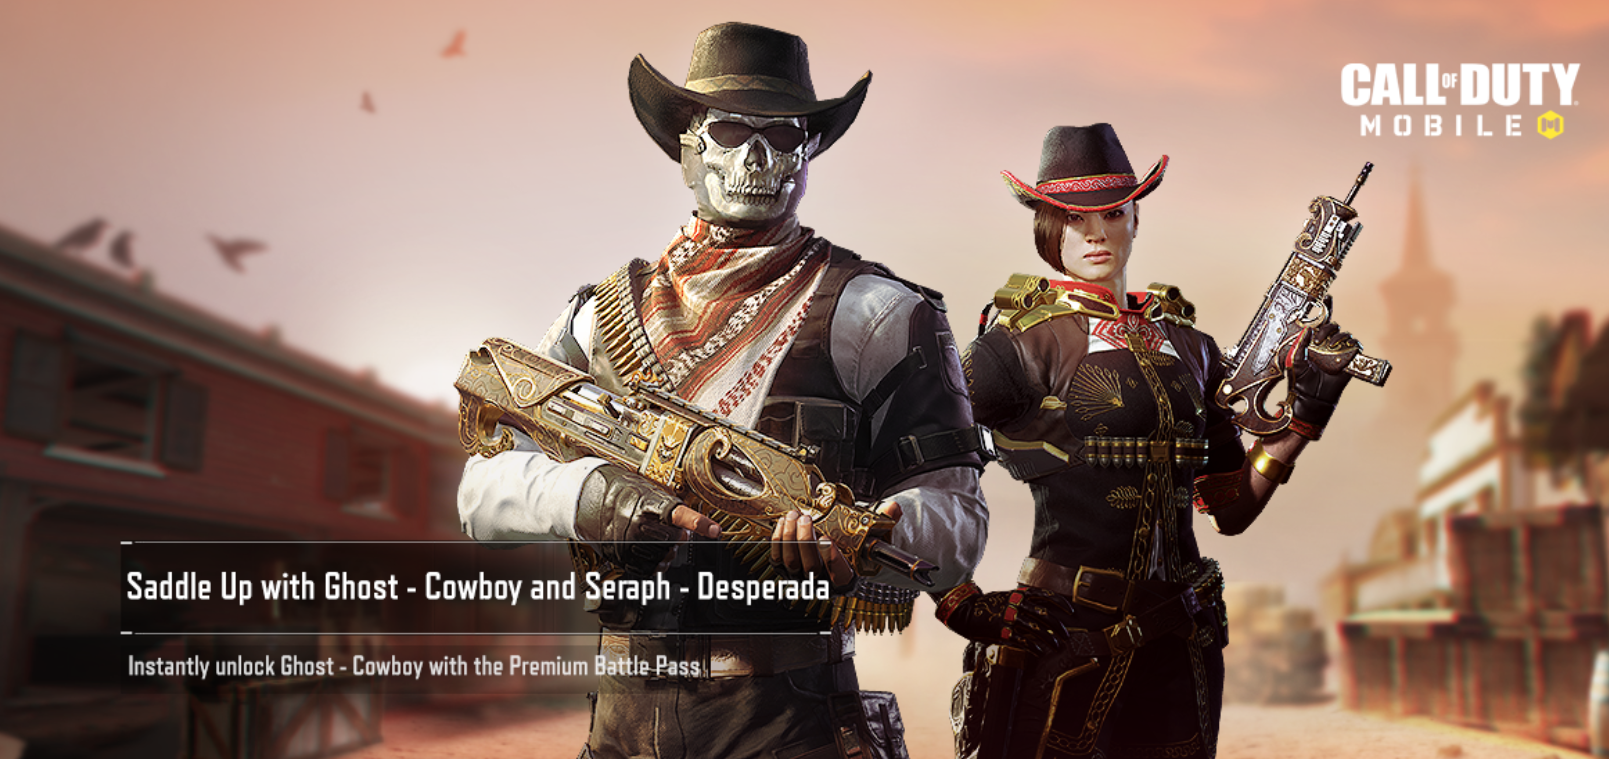 Call of Duty Mobile Wild West season